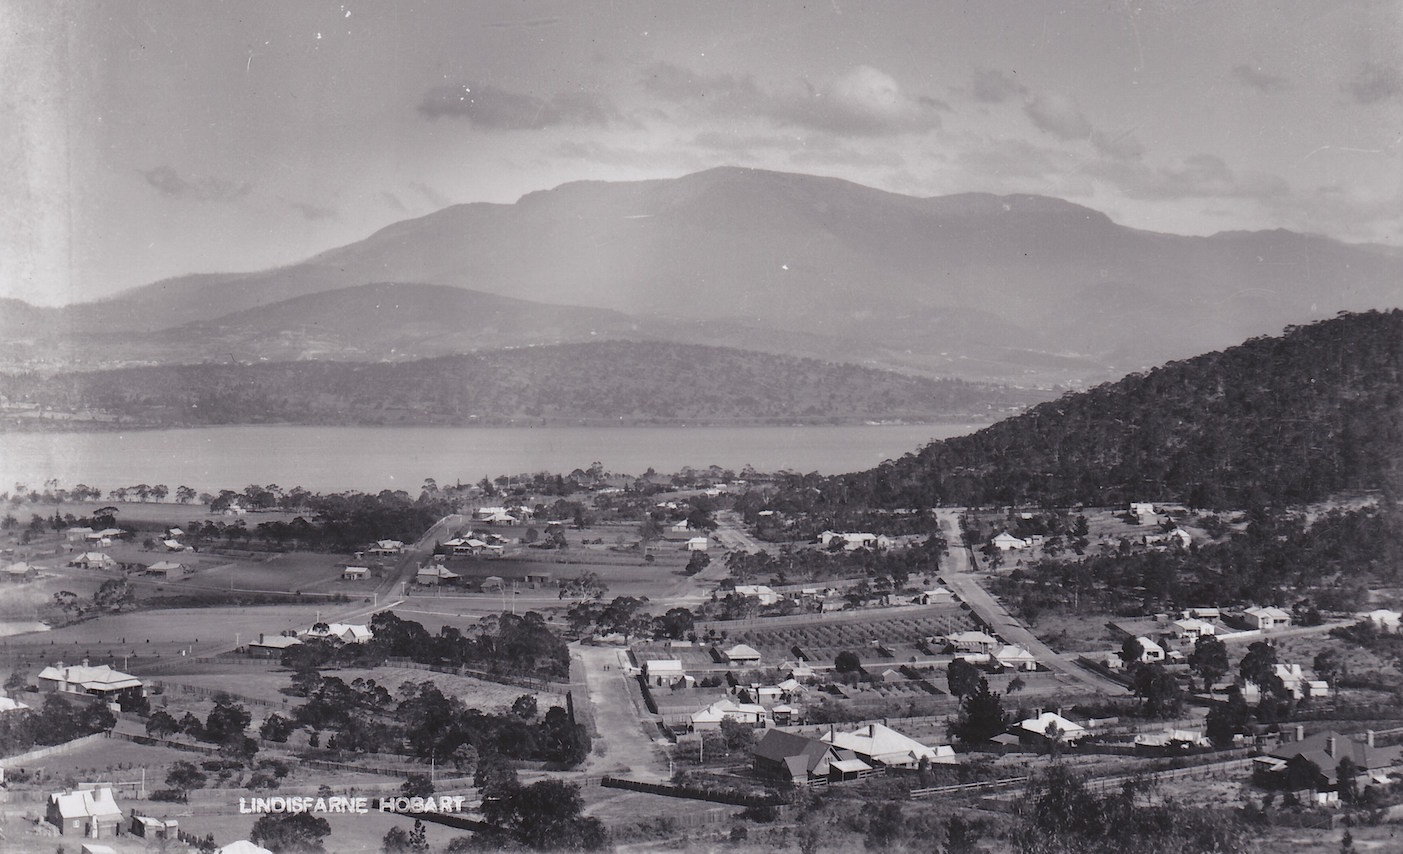 For all who enjoy the history of the Lindisfarne district in southern Tasmania.